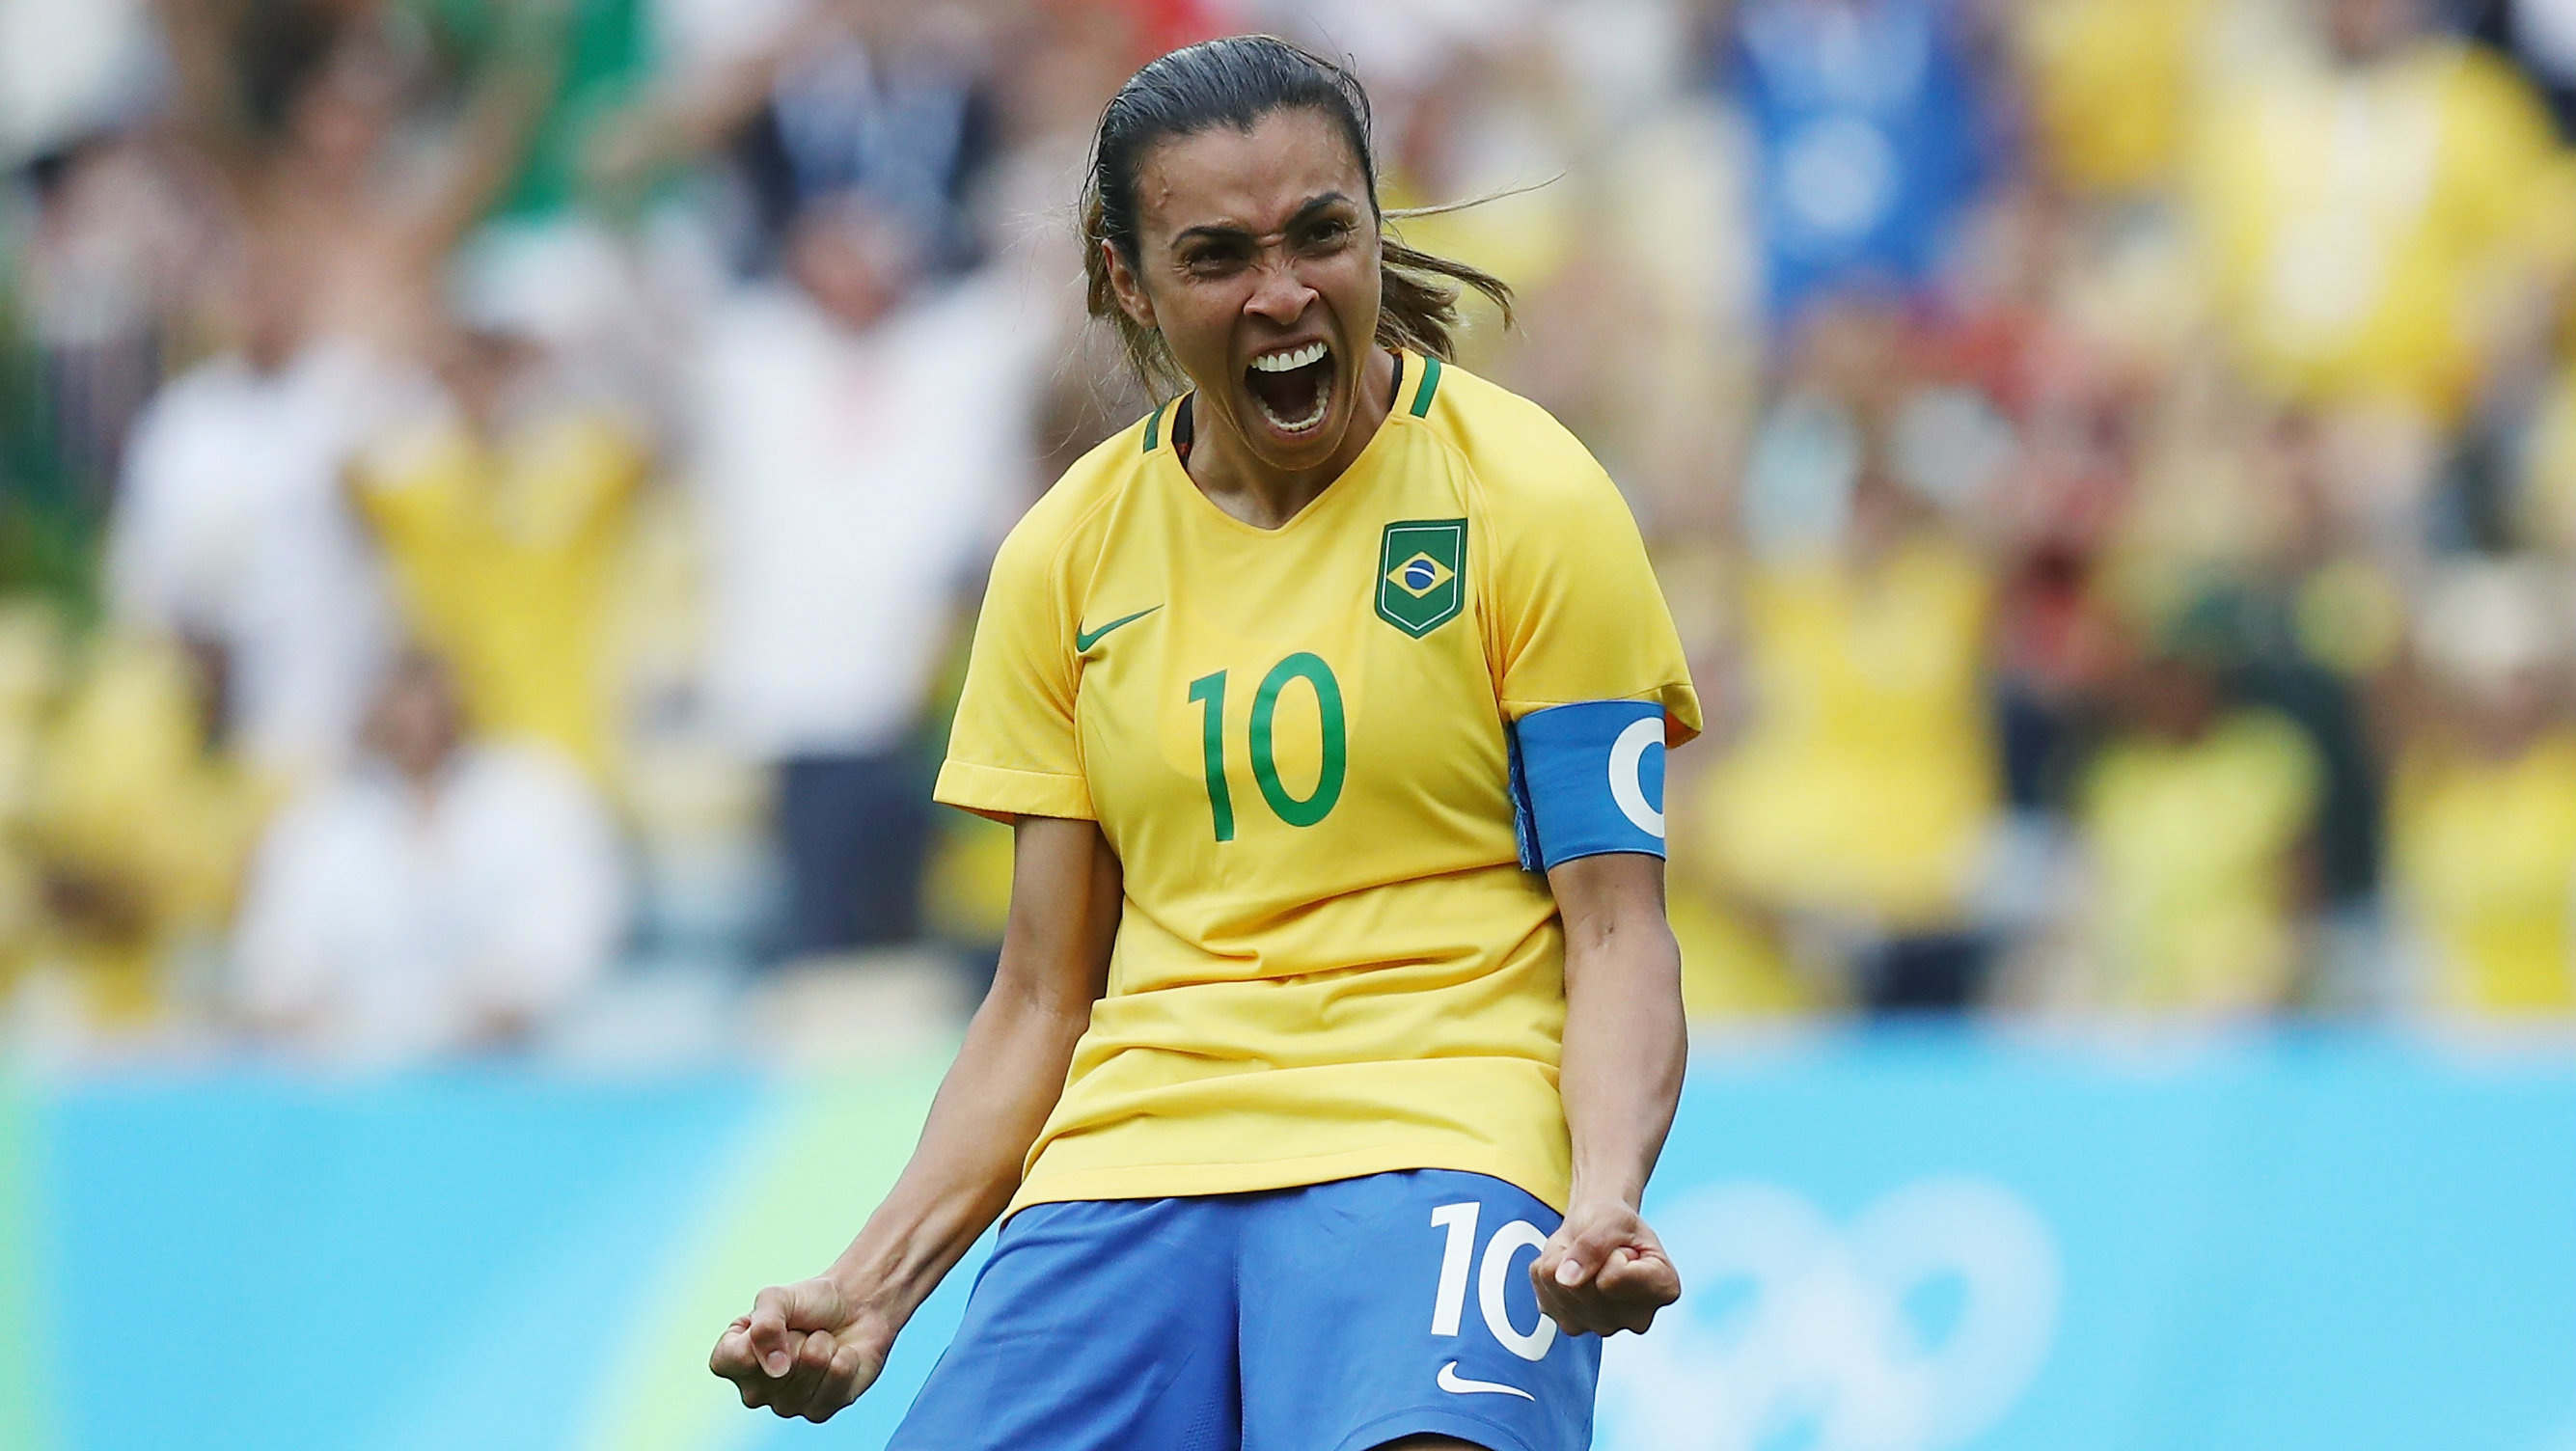 Brazilian superstar Marta has been named to face the Matildas next month in Australia.